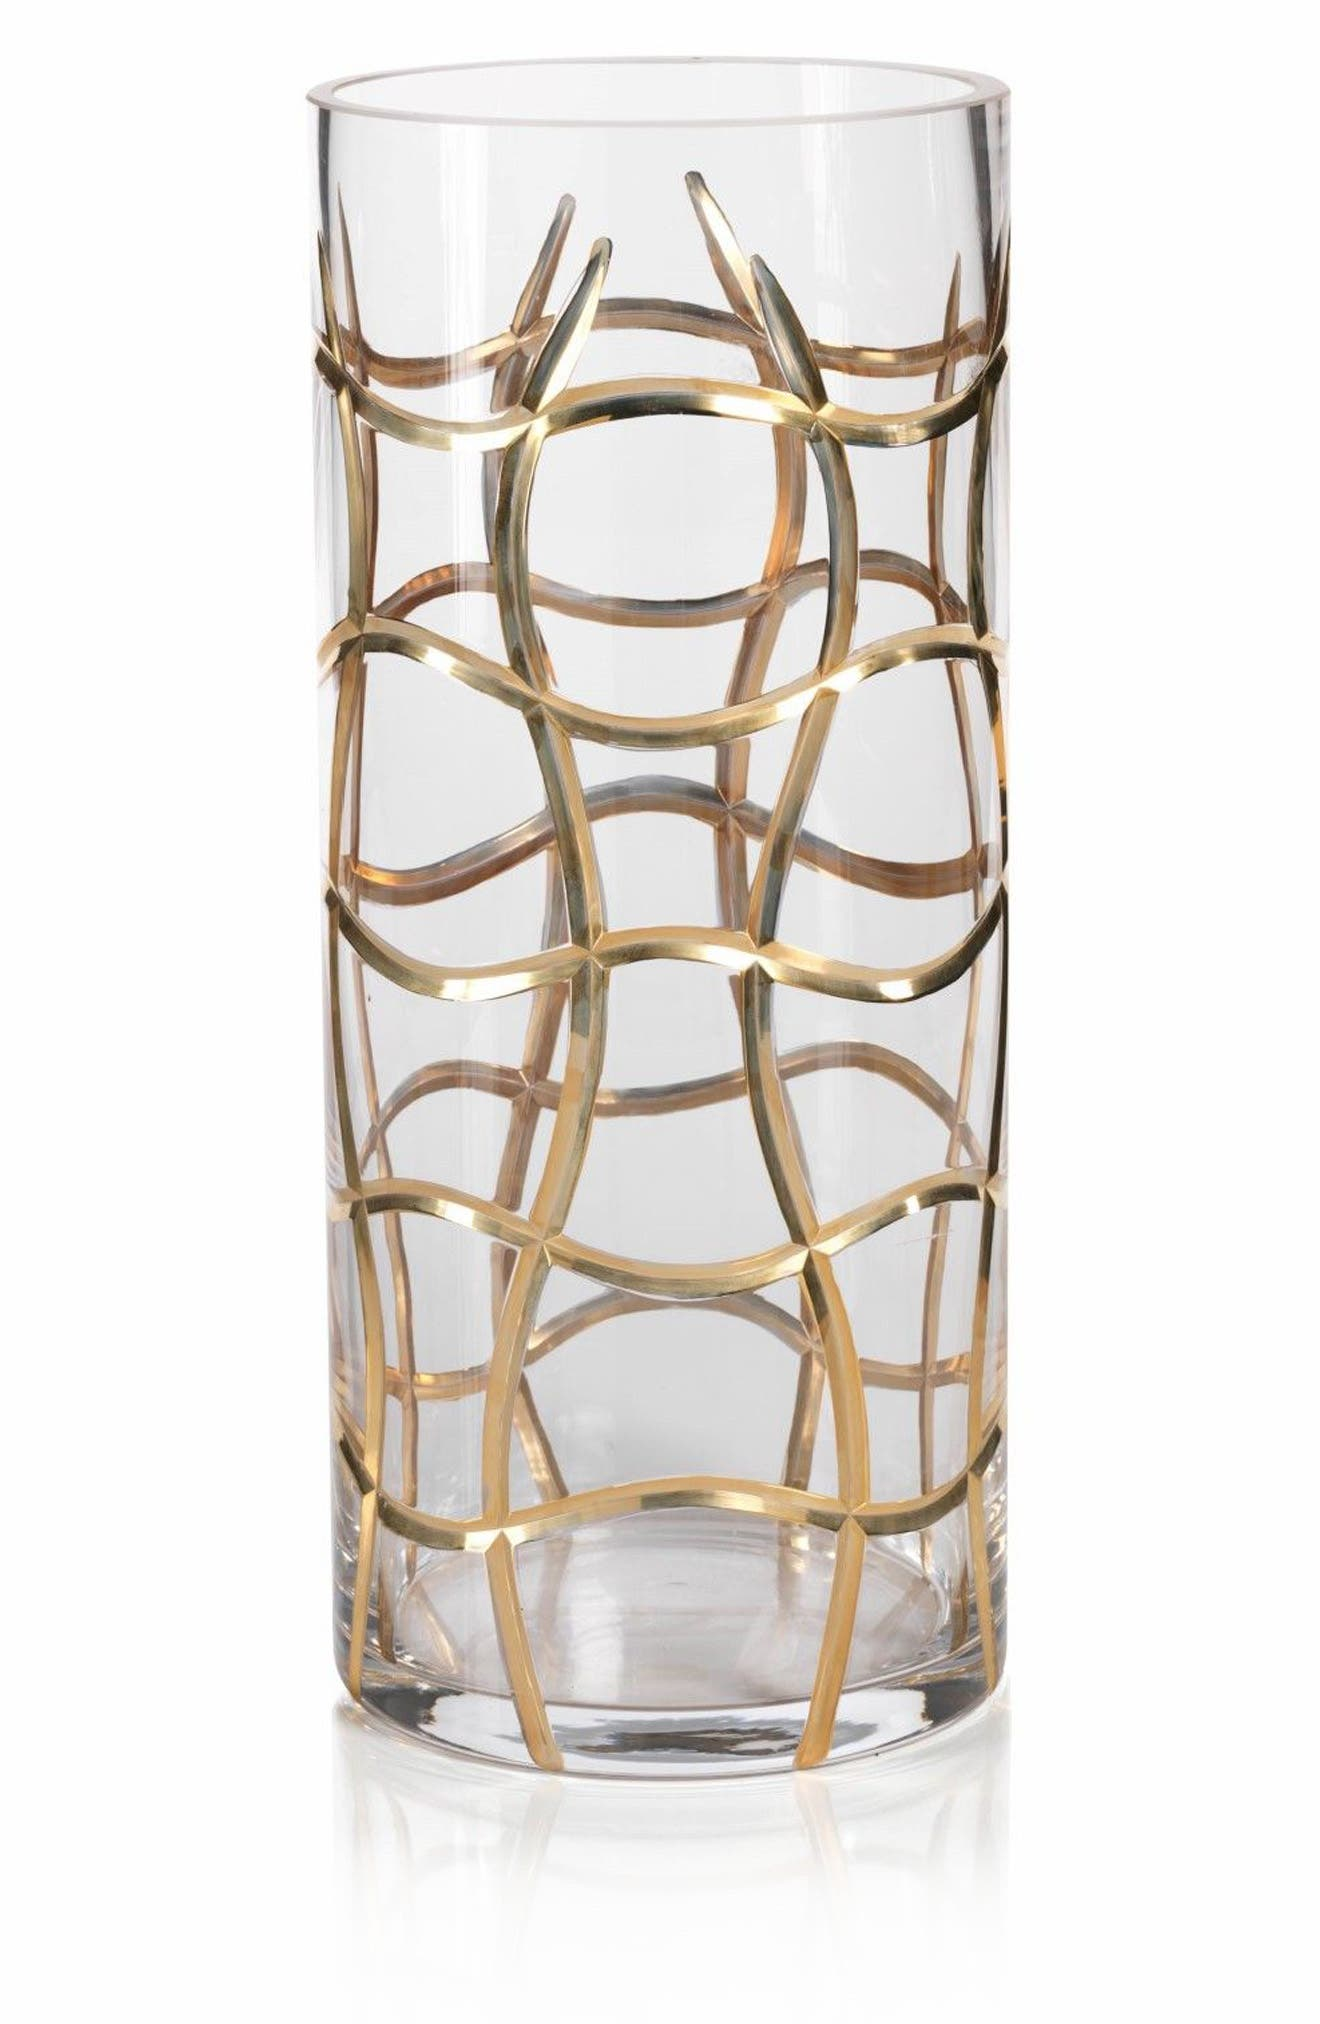 Large Groove Hurricane Candleholder,                         Main,                         color, Clear/ Gold/ Metallic